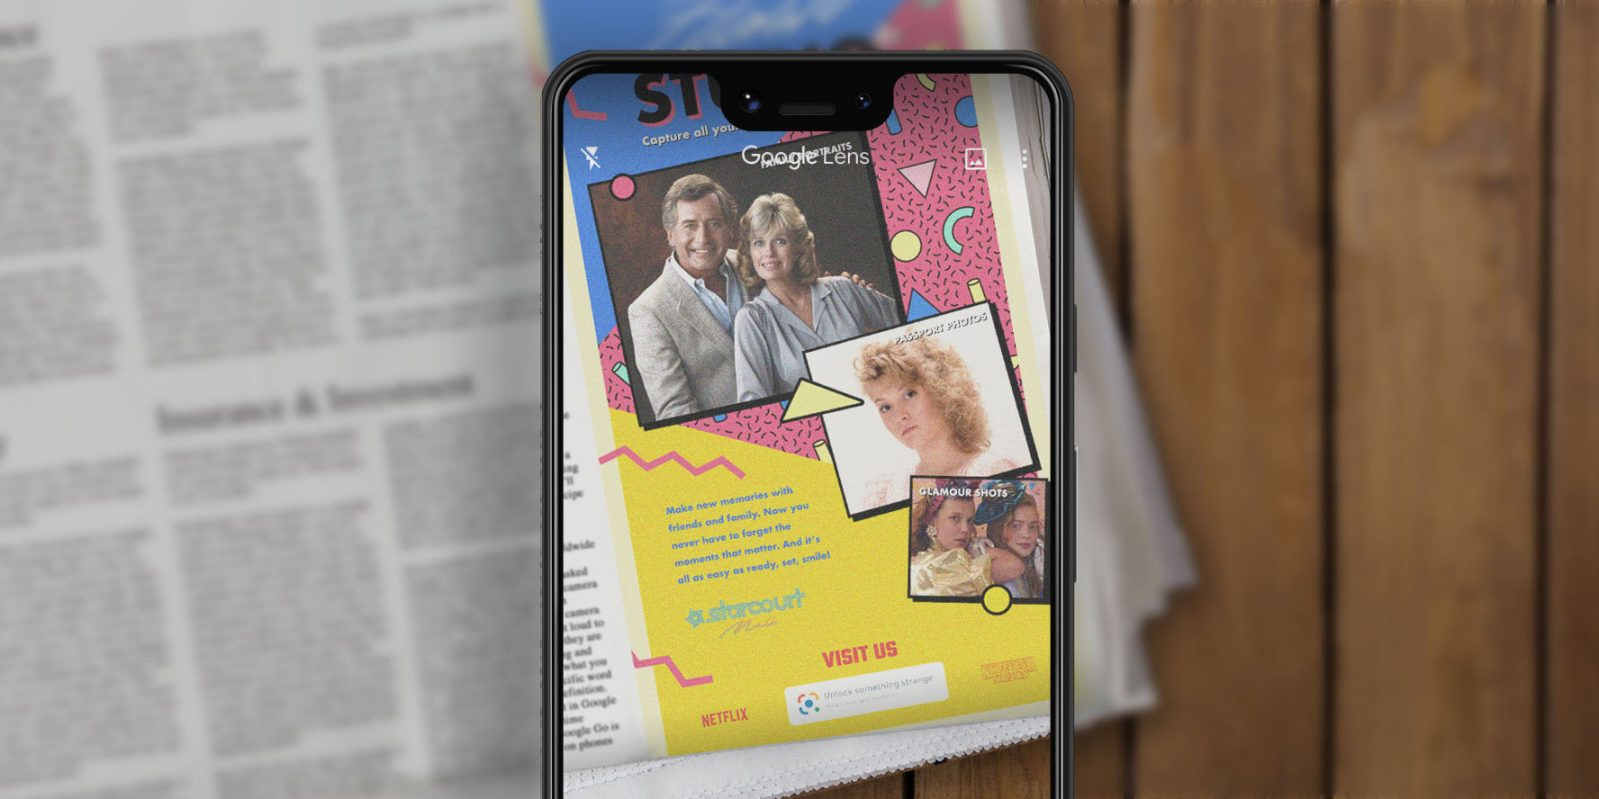 Thumbnail for Google Lens: Stranger Things Ads